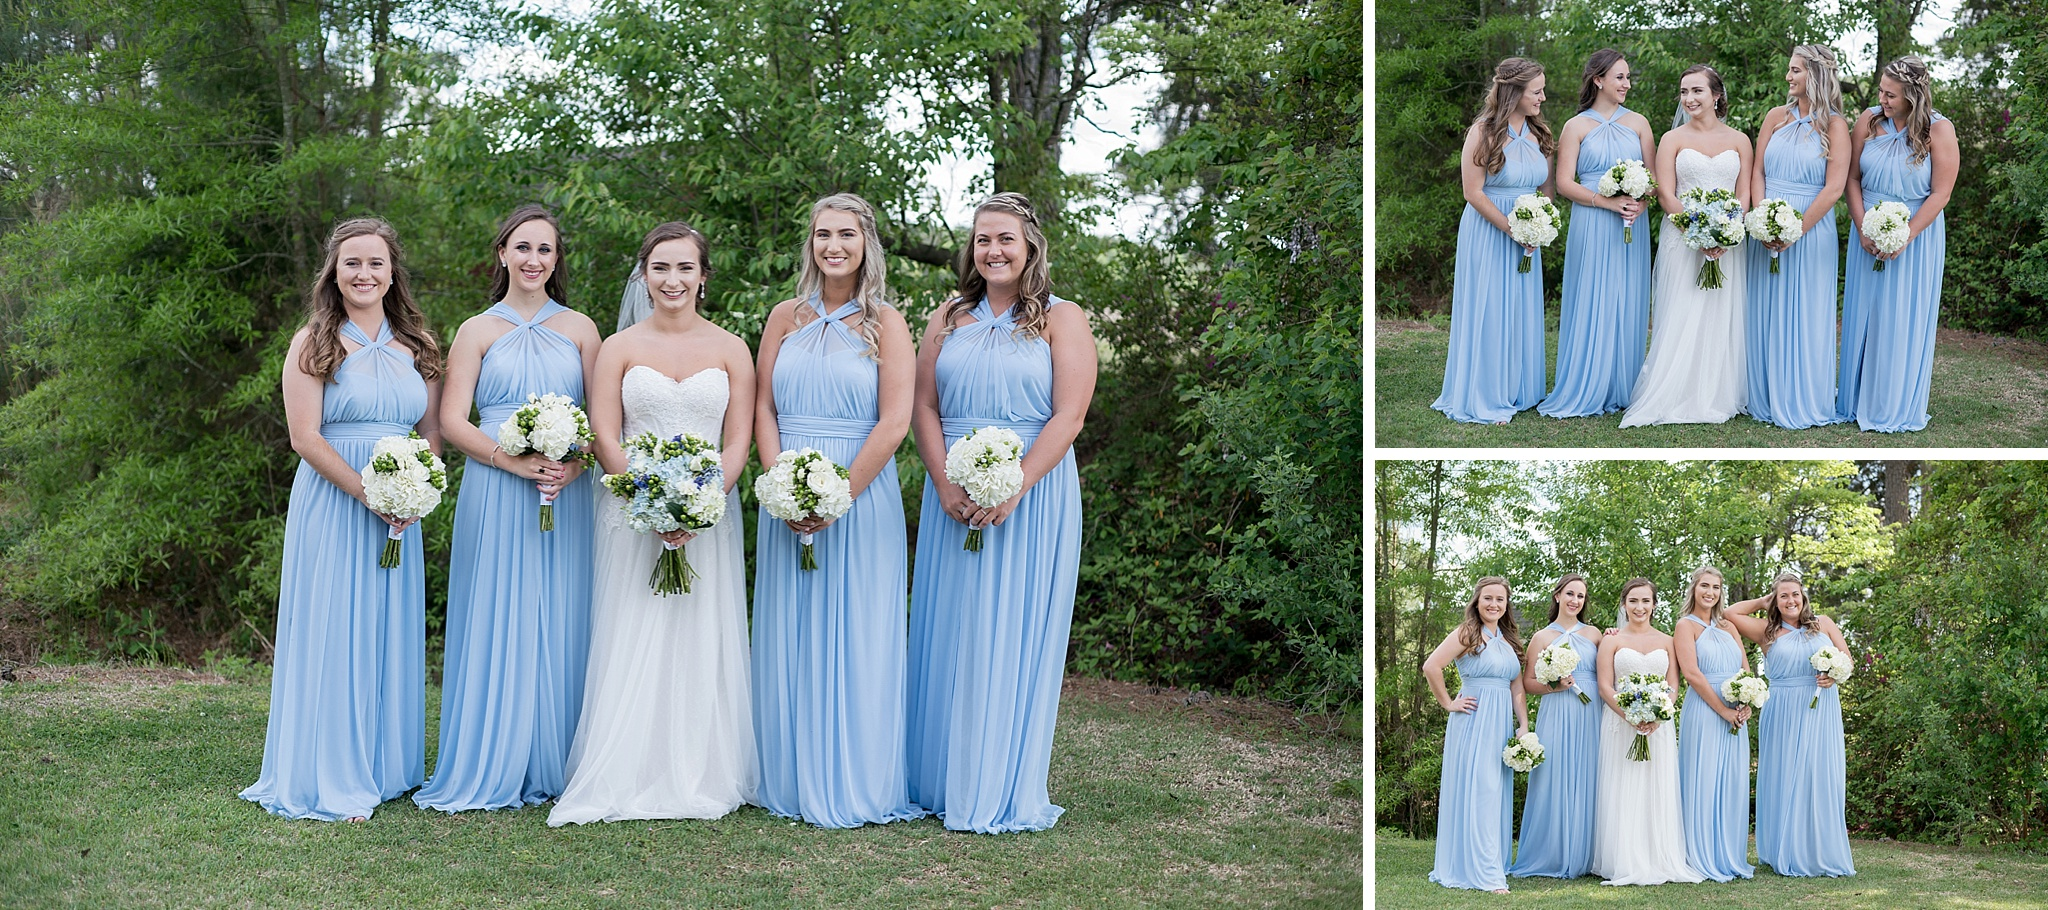 400-Saint-Andrews-Wedding-NC-Photographer-129.jpg